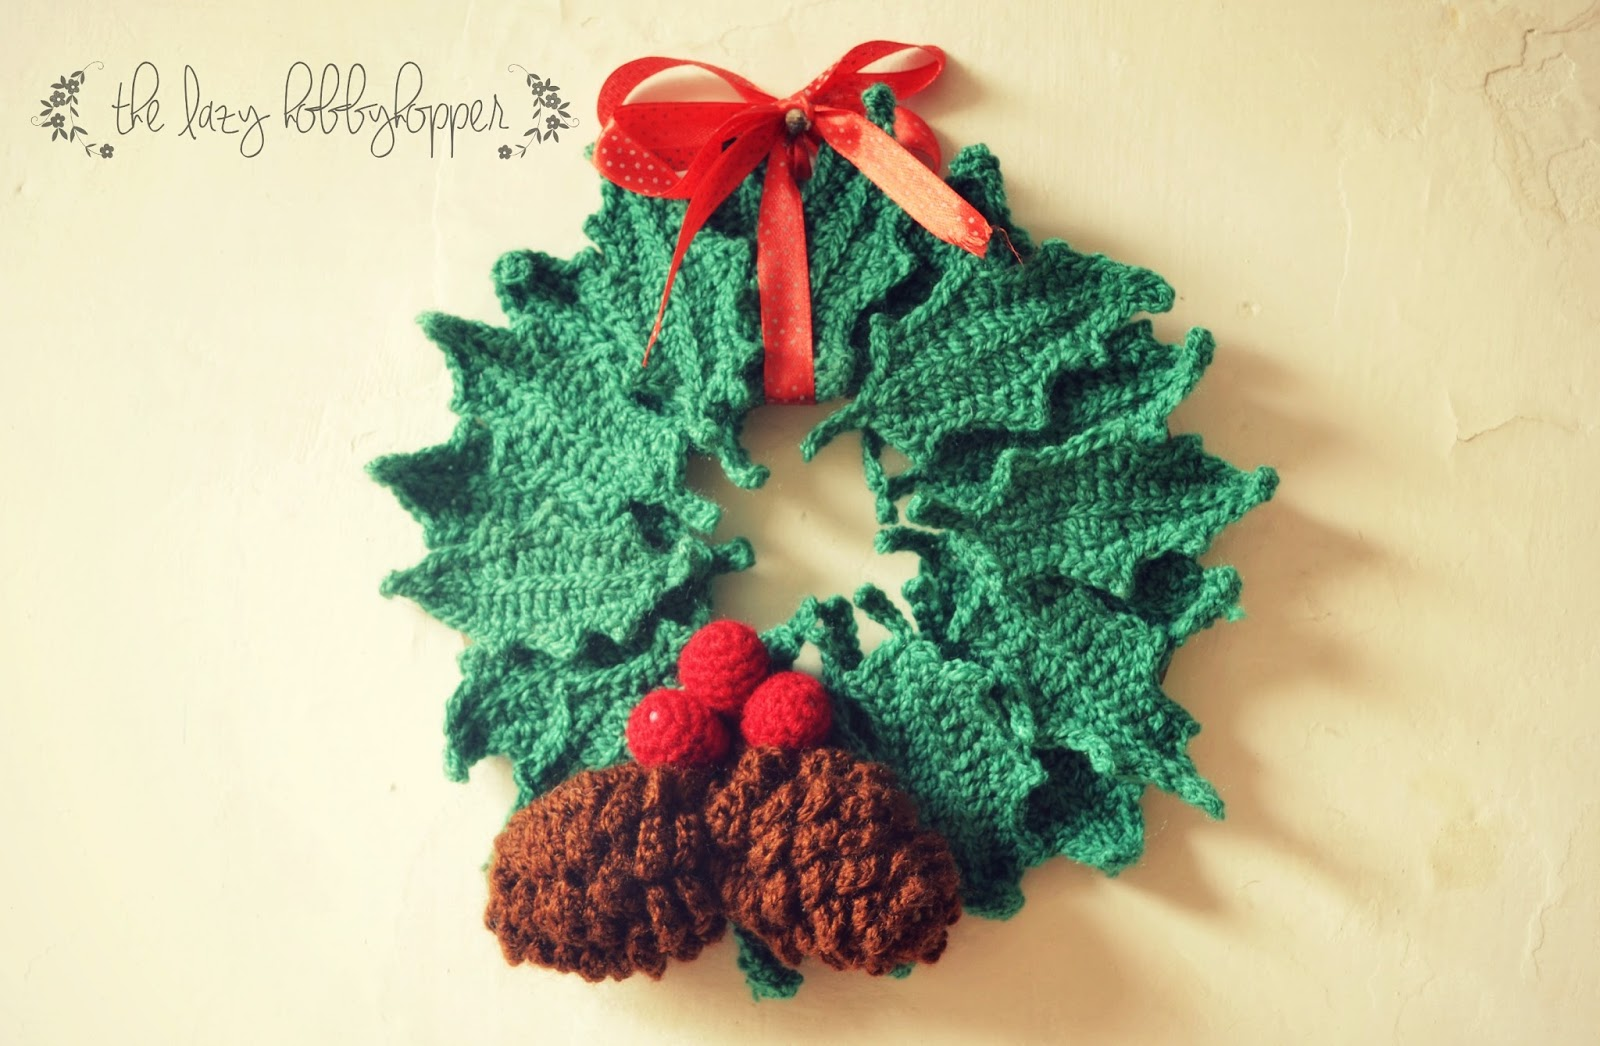 The lazy hobbyhopper crochet christmas wreath free pattern crochet christmas wreath free pattern bankloansurffo Image collections